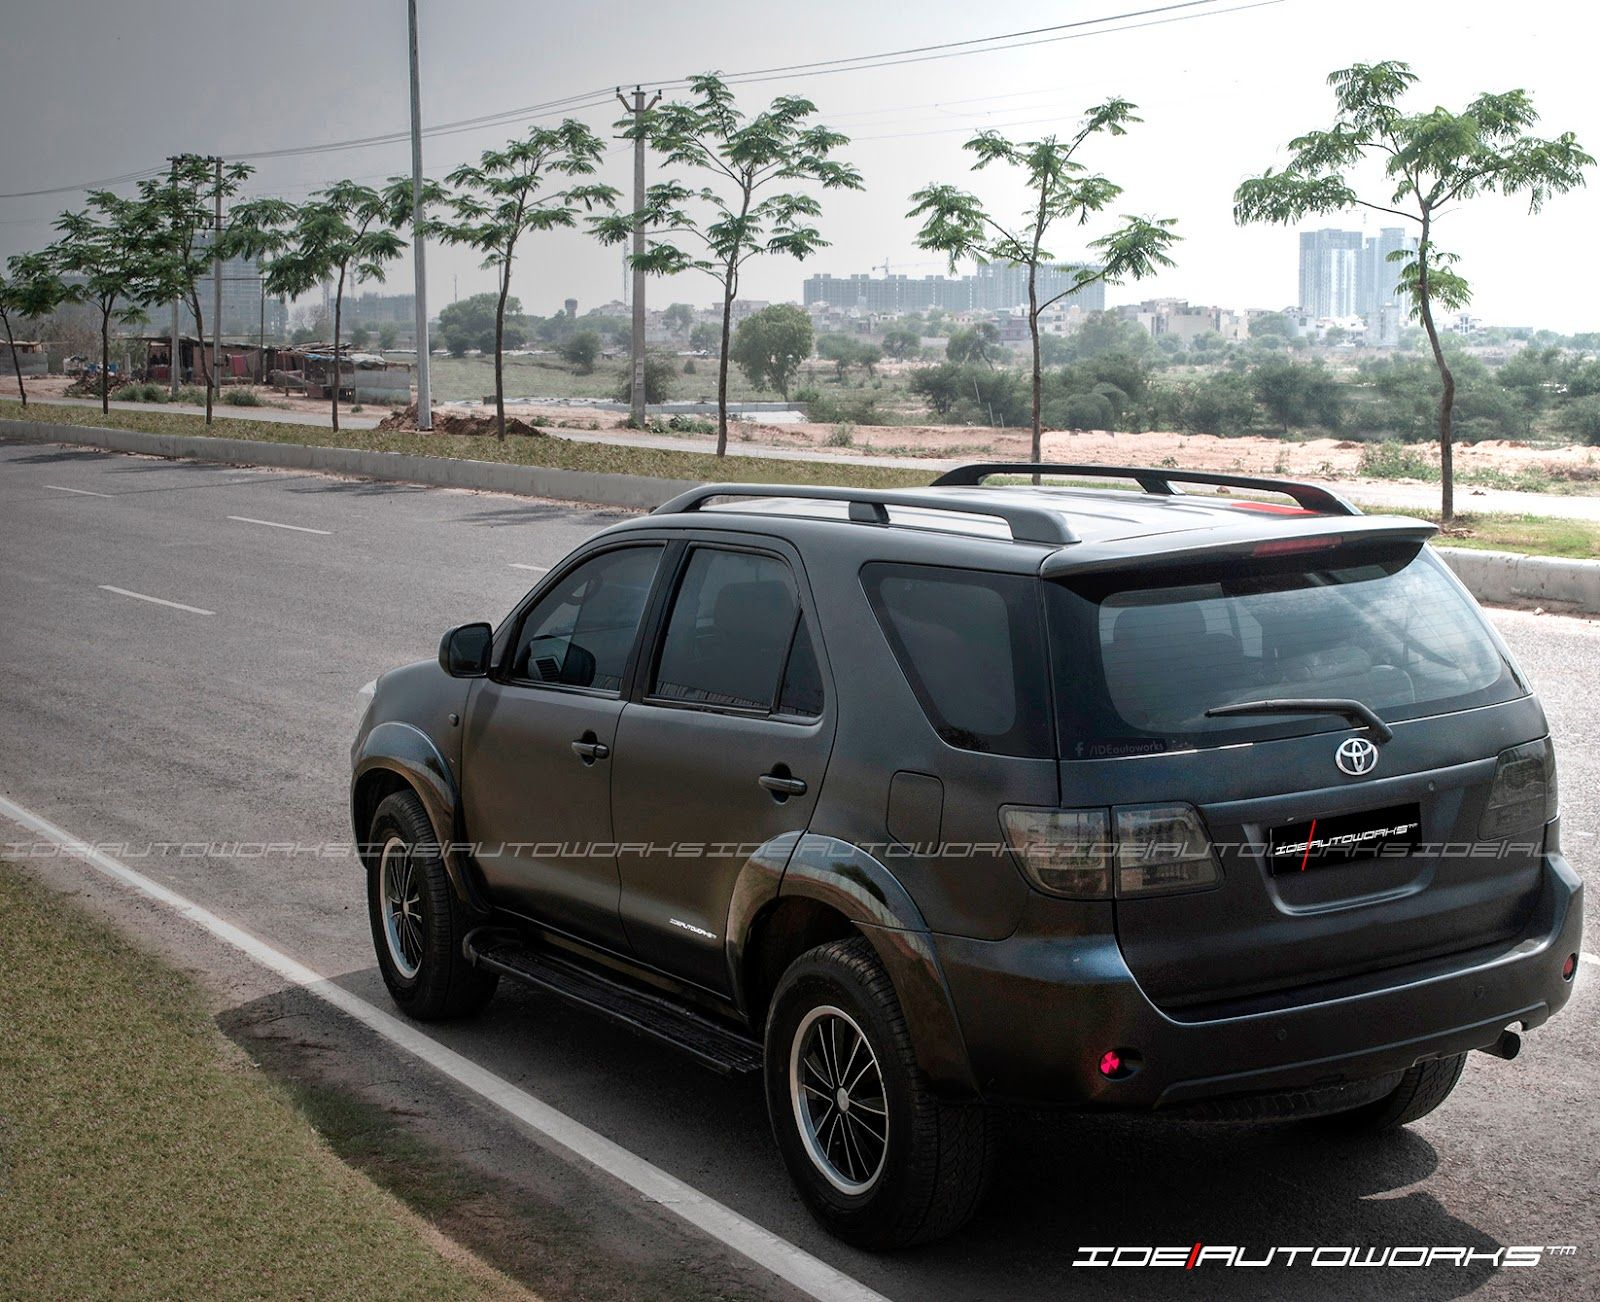 Ide autoworks toyota fortuner satin matte black full car wrap